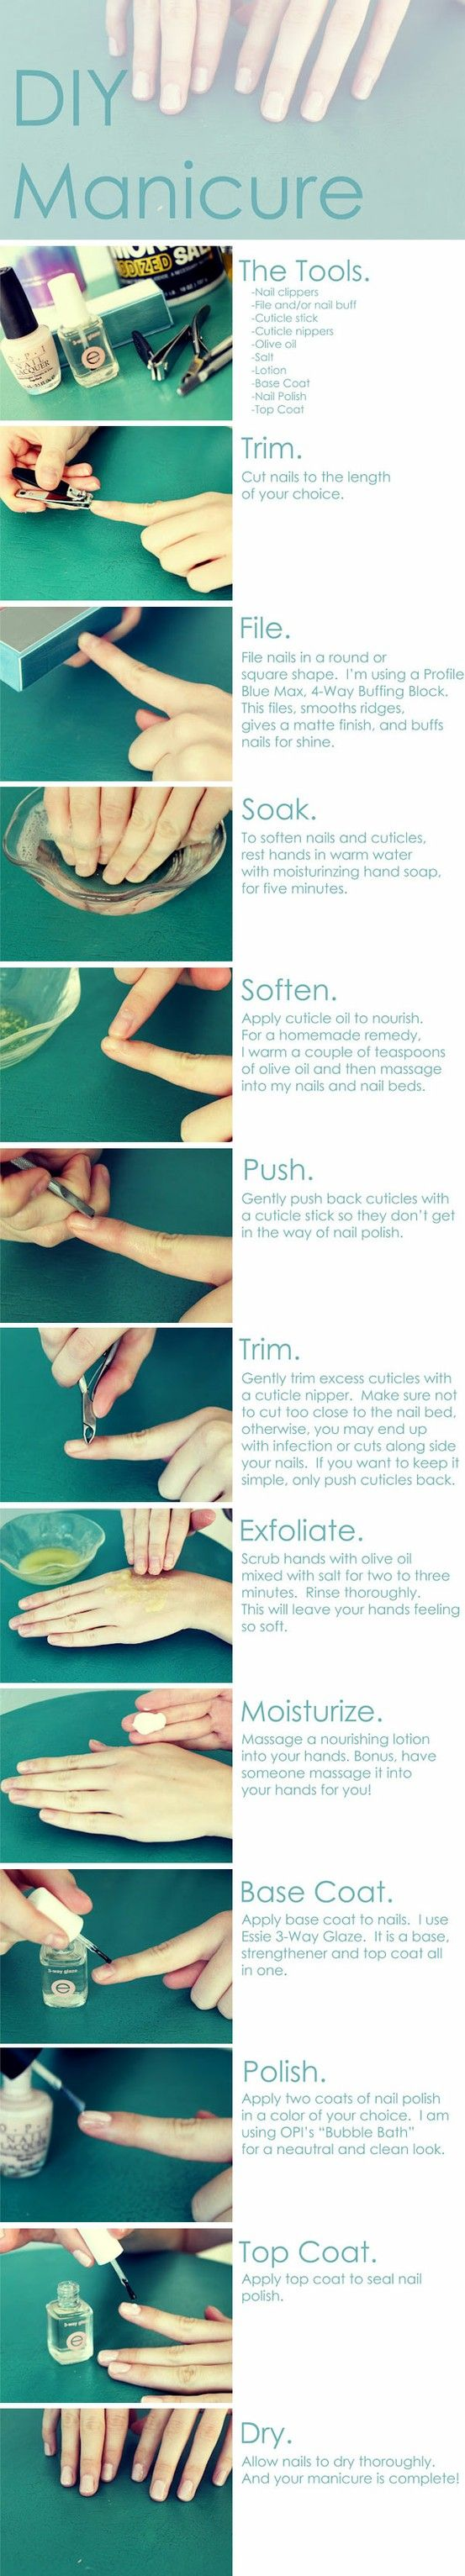 DIY Step-by-step Manicure